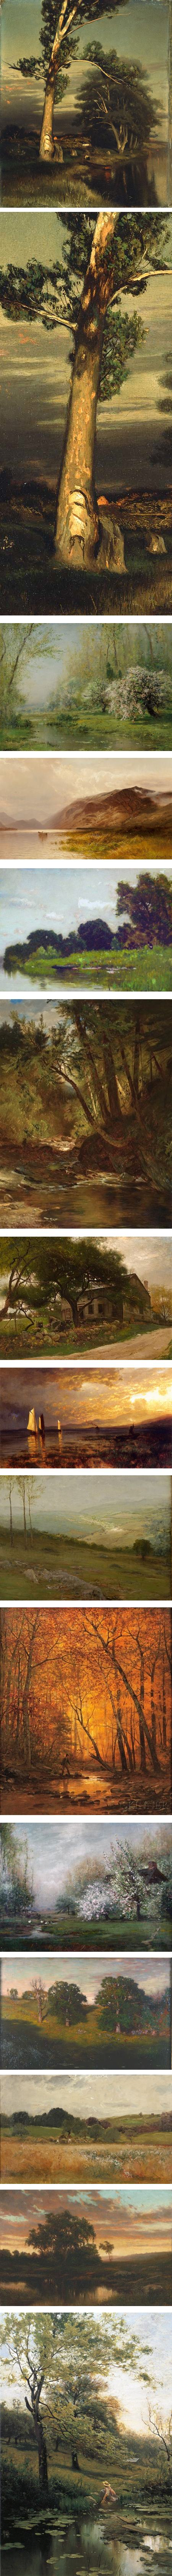 Arthur Parton, Hudson River School painter, landscape paintings